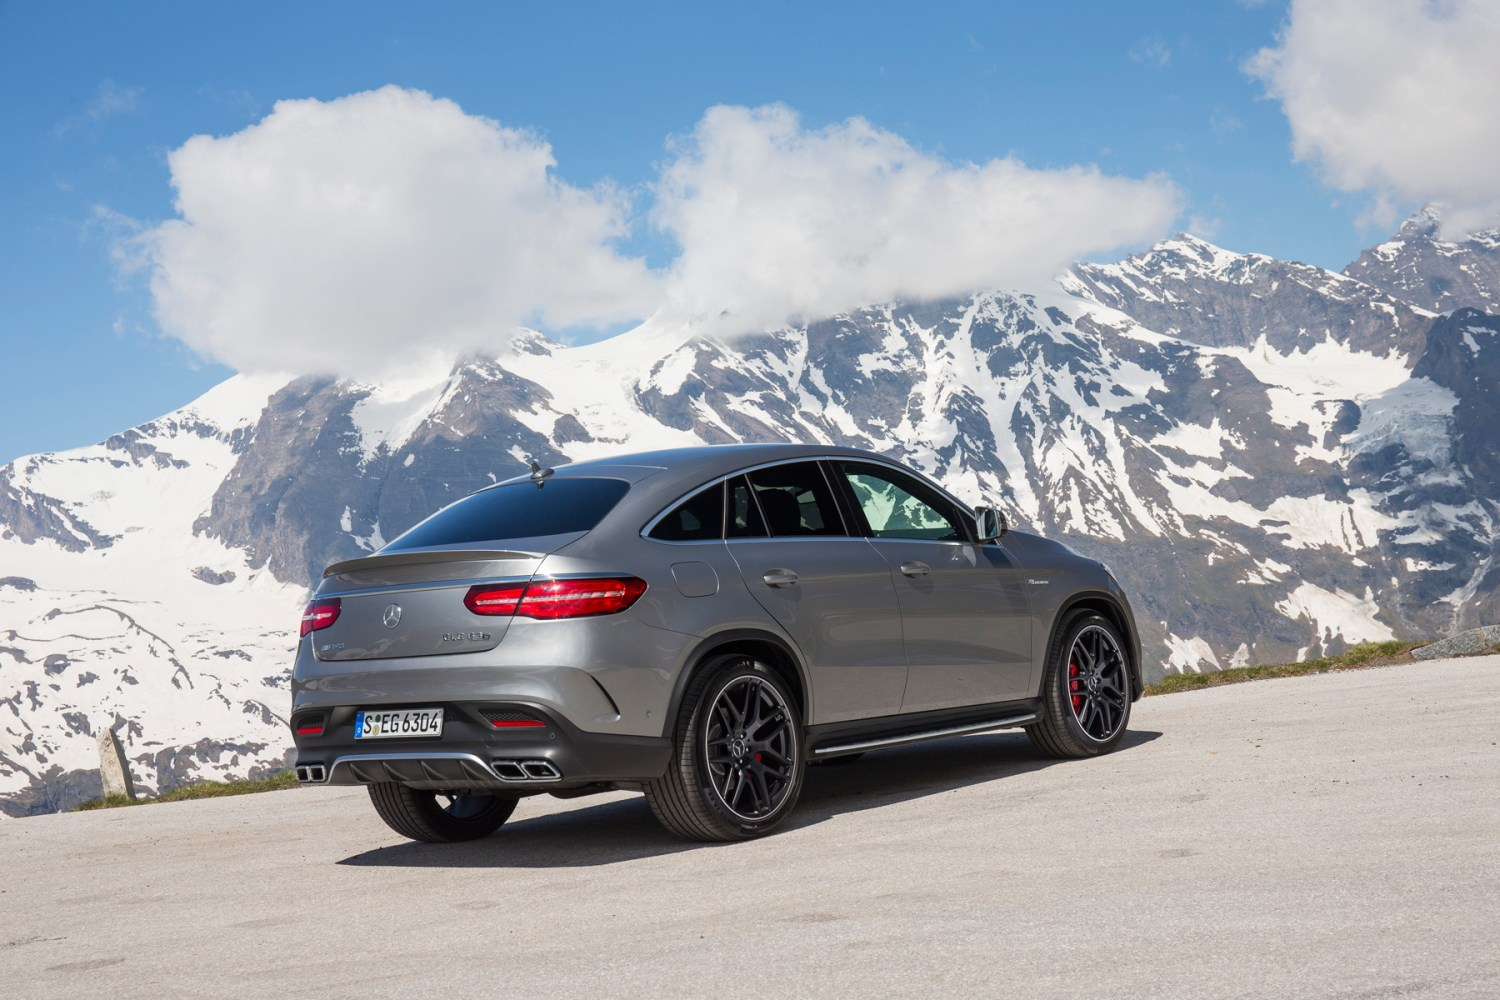 02_Mercedes-AMG_GLE_63_S_Coupe